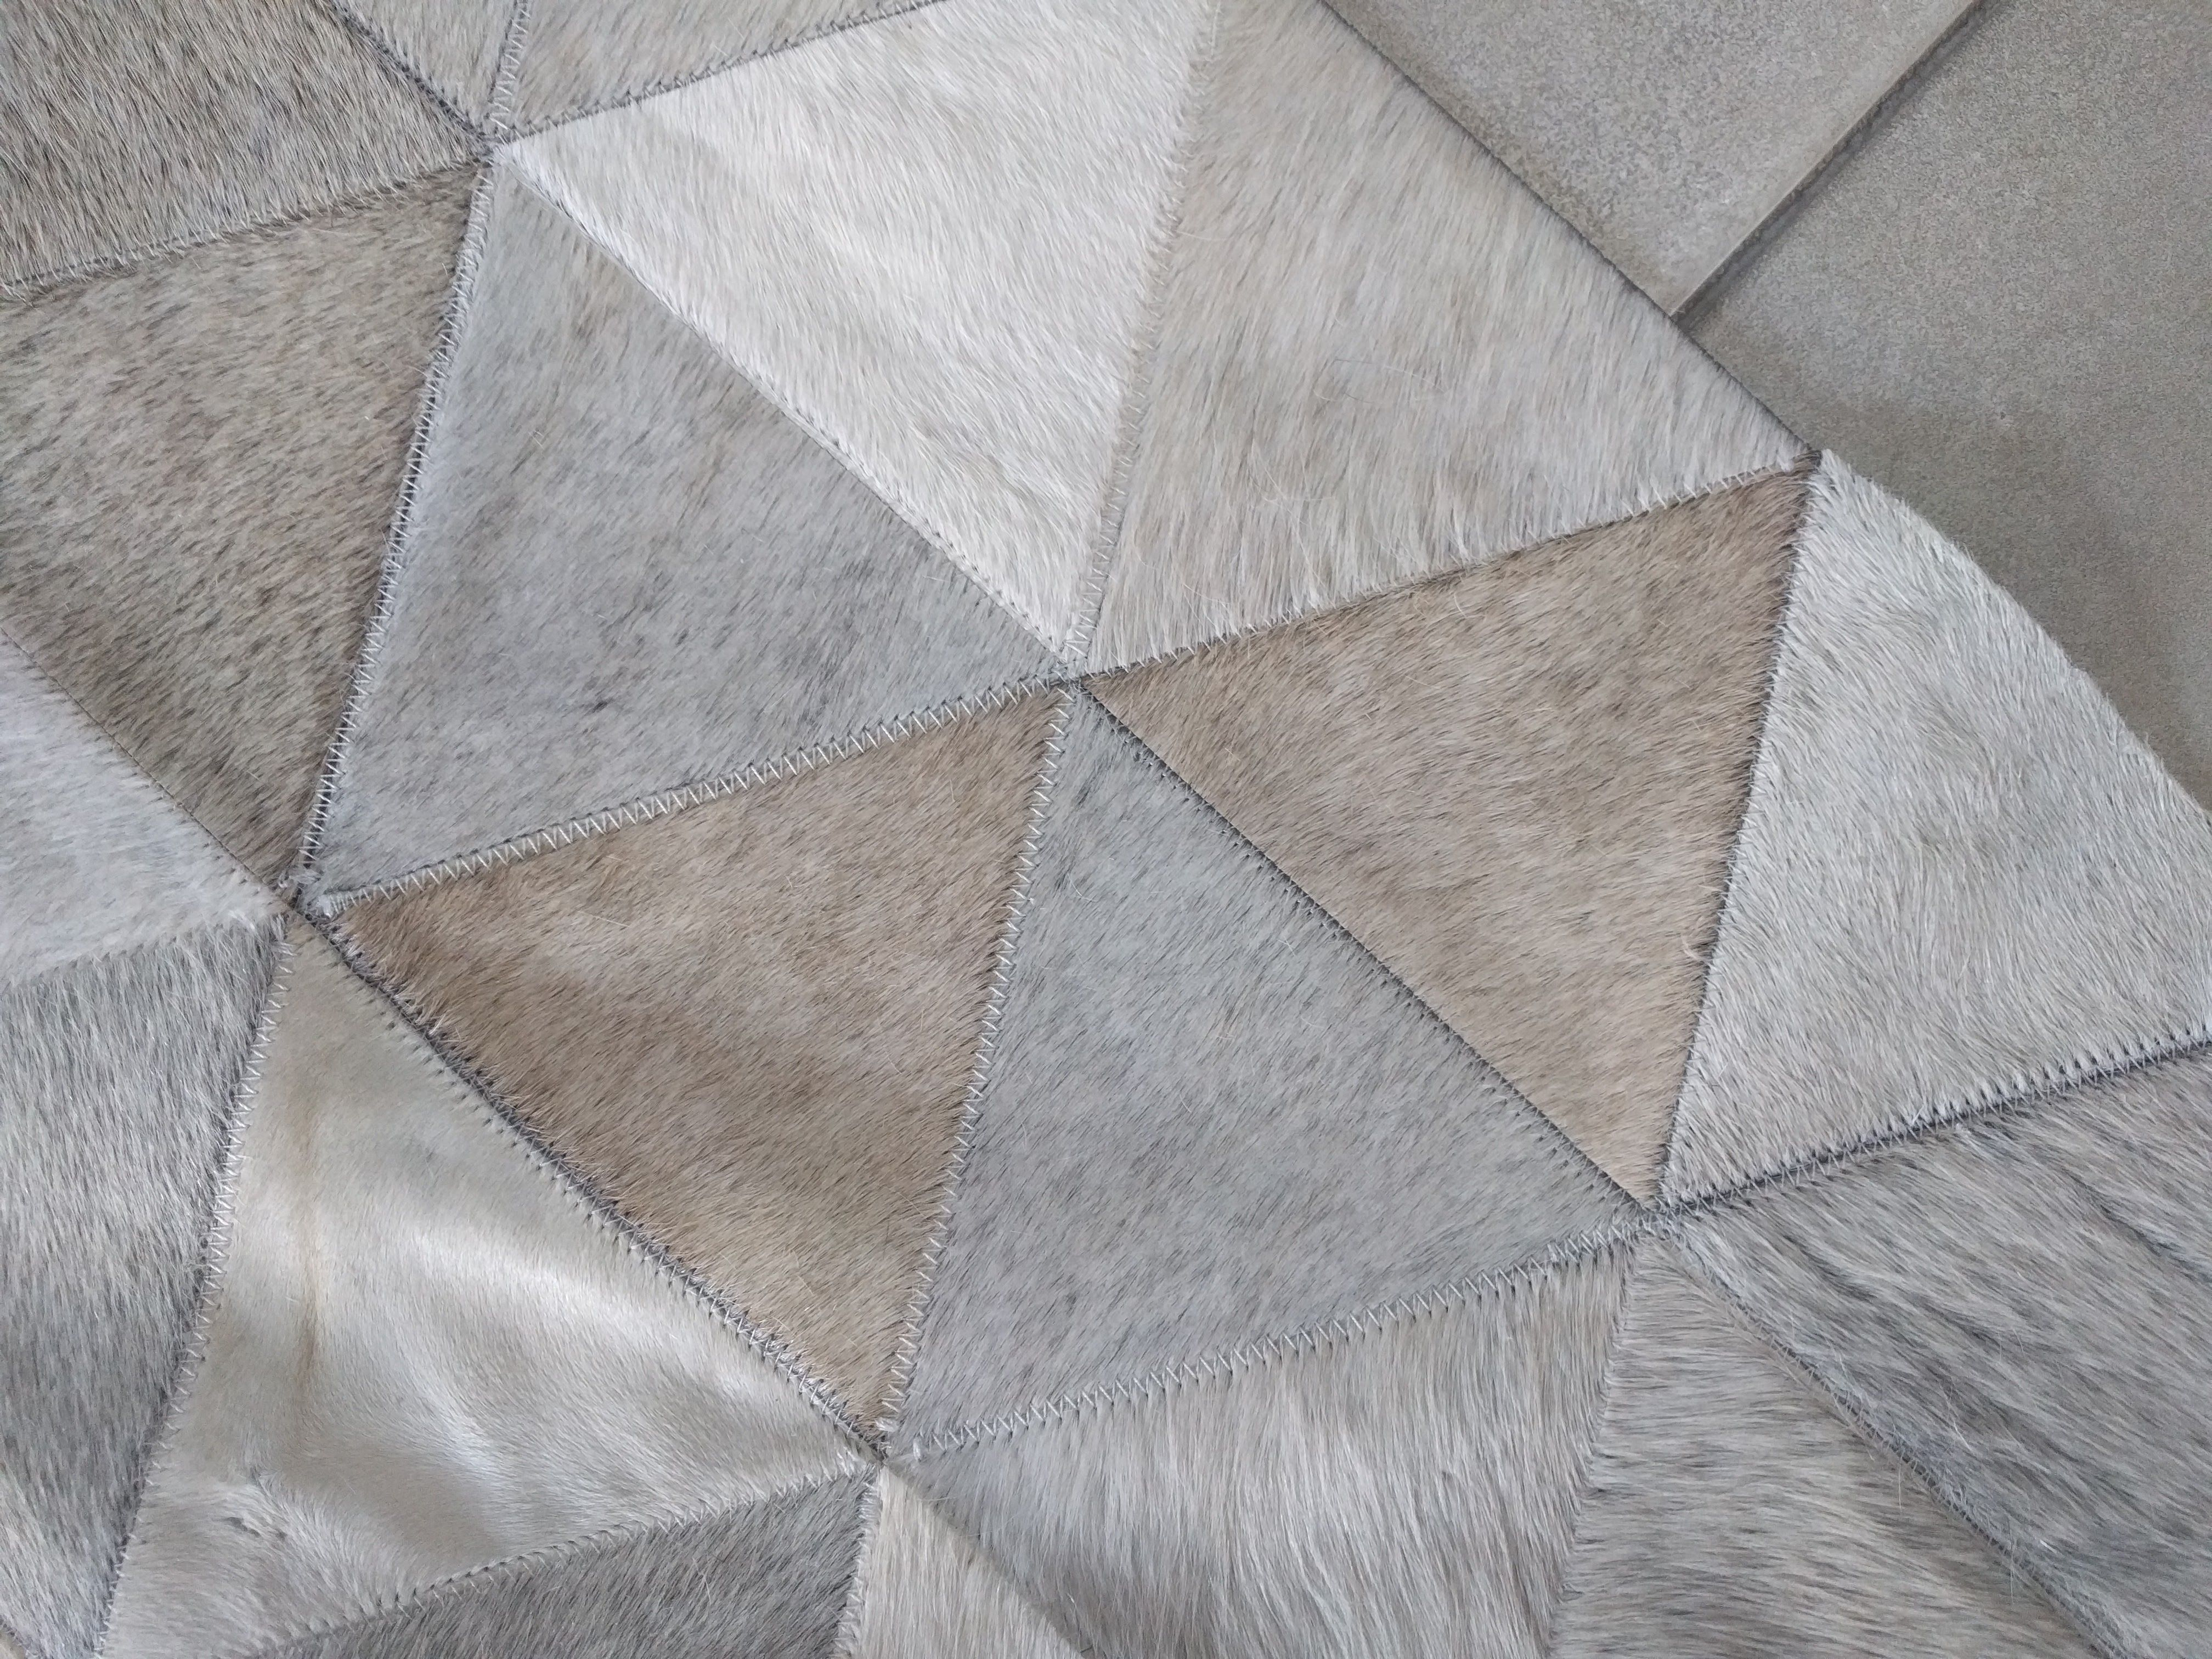 Taupe Cream Beige And Gray Kata Patchwork Cowhide Rug This Color Combination Is Perfect Elegant Wher In 2020 Patchwork Cowhide Rug Patchwork Cowhide Cow Hide Rug